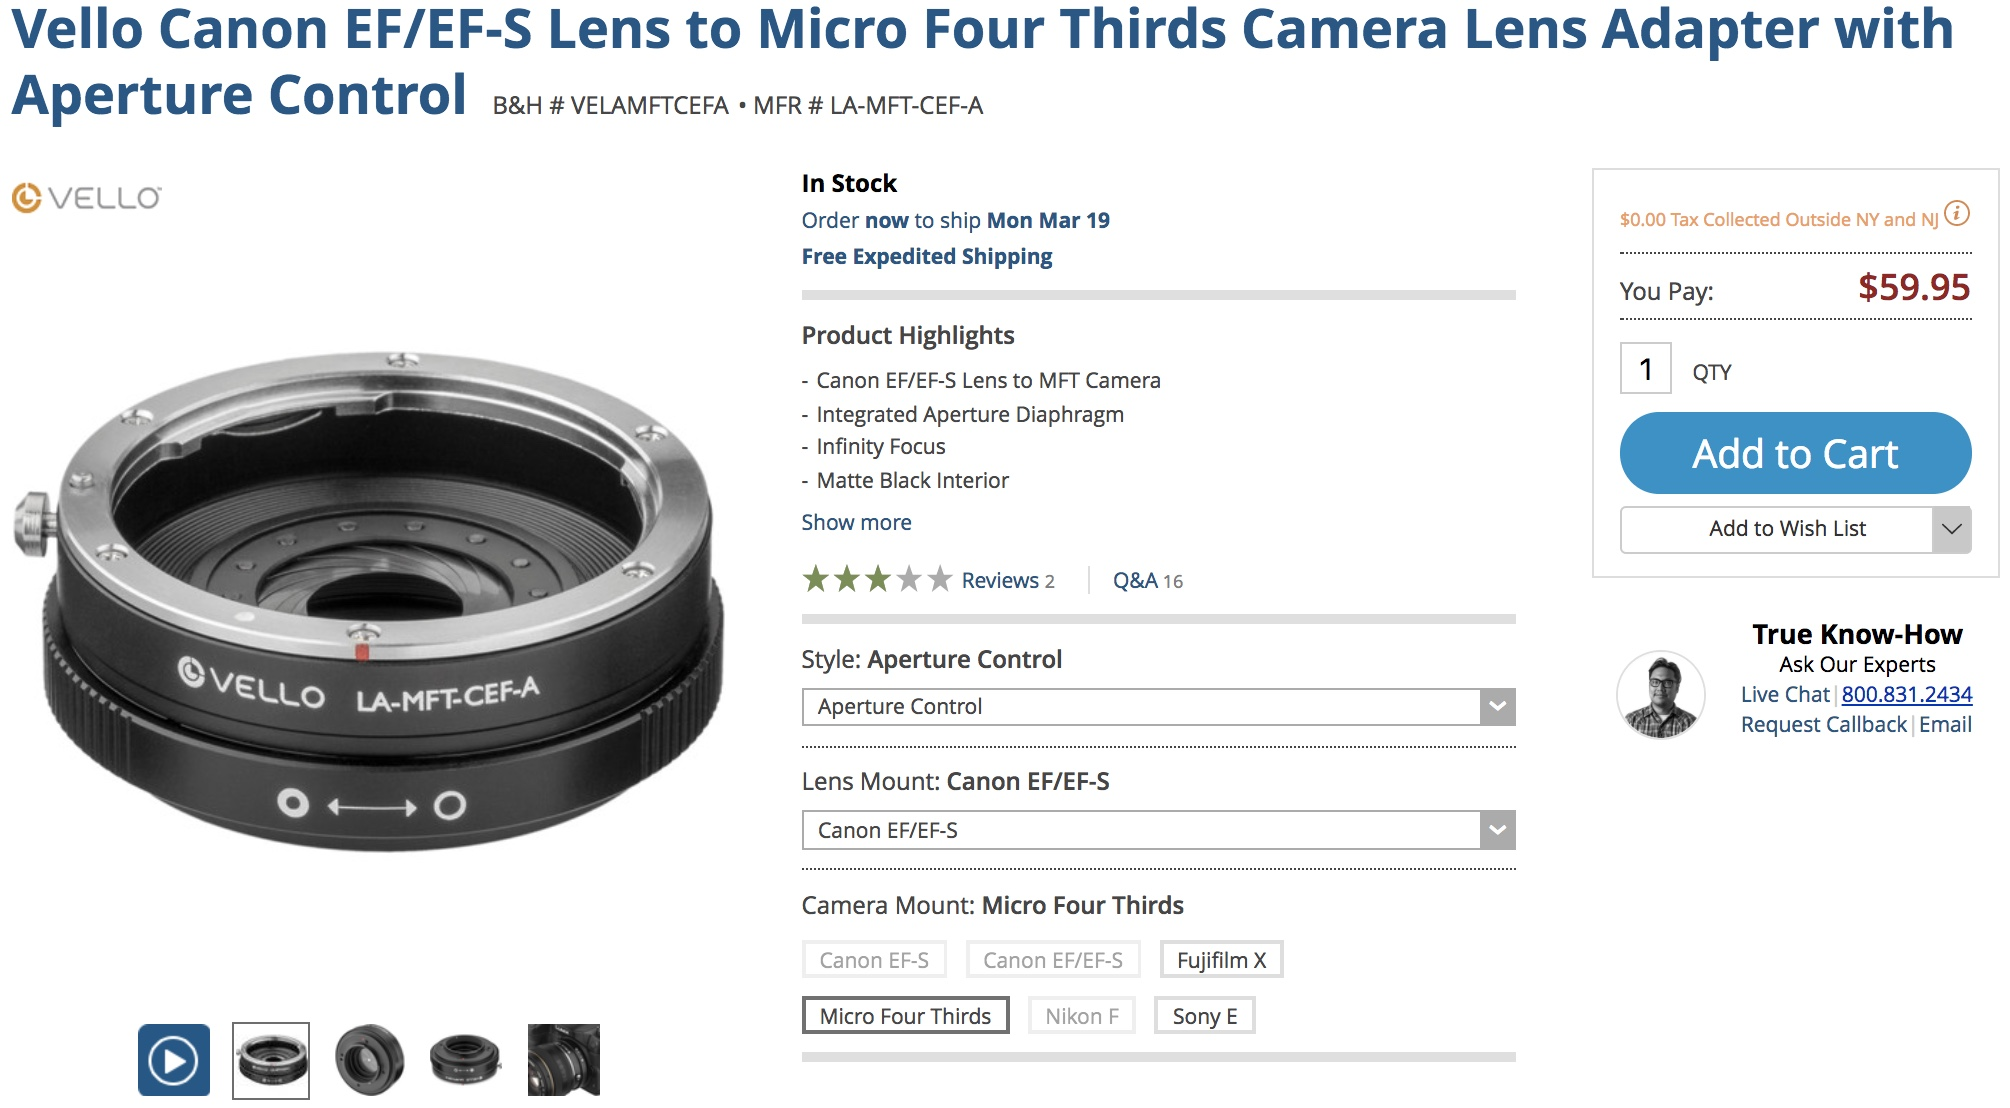 New Vello Canon EF/EF-S + Nikon F Lens Adapters Listed